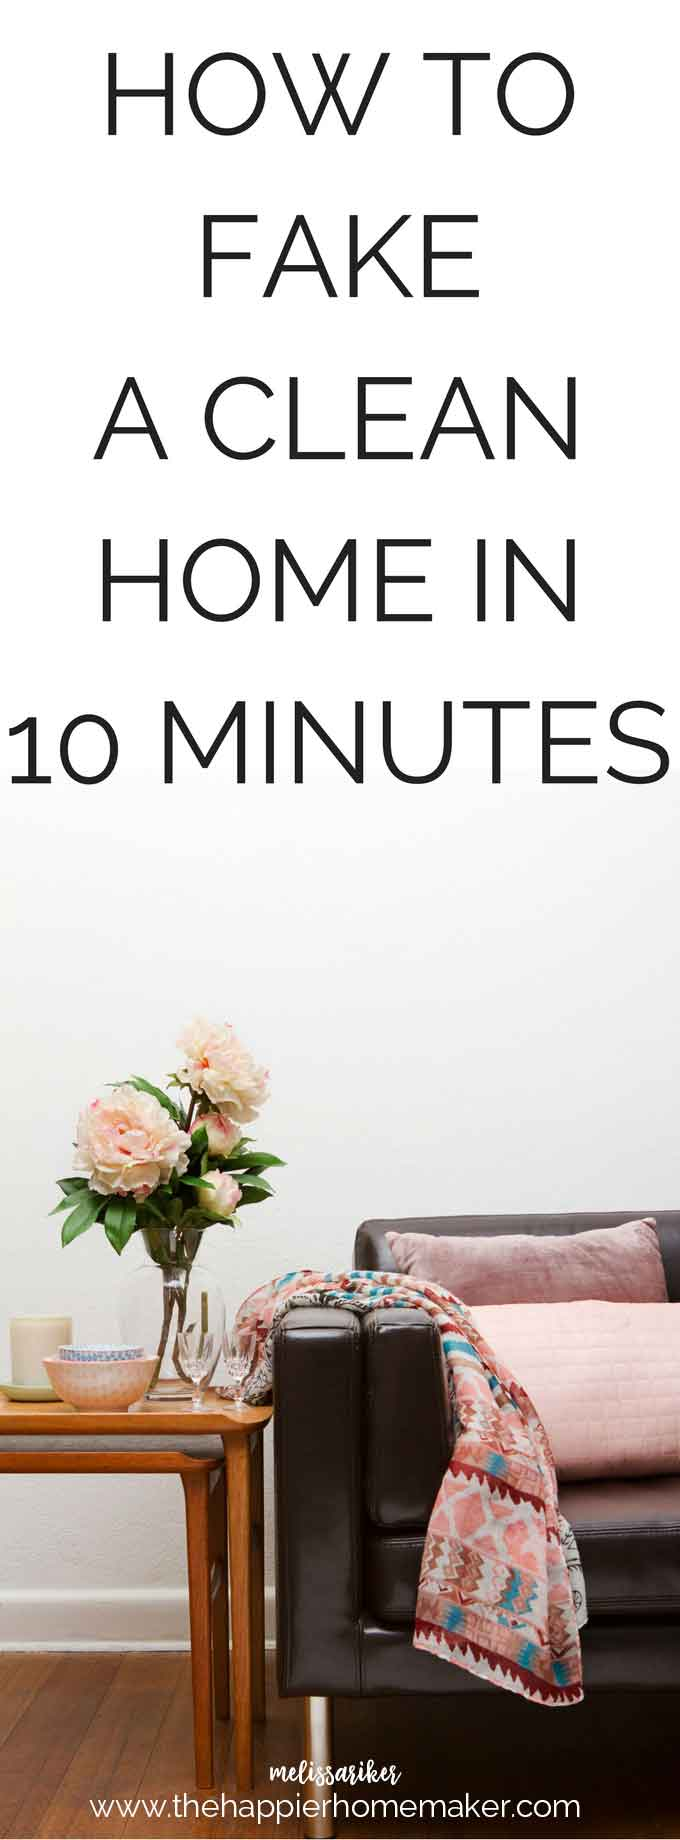 Great tips for how to fake a clean home-perfect for when you get a call that someone is